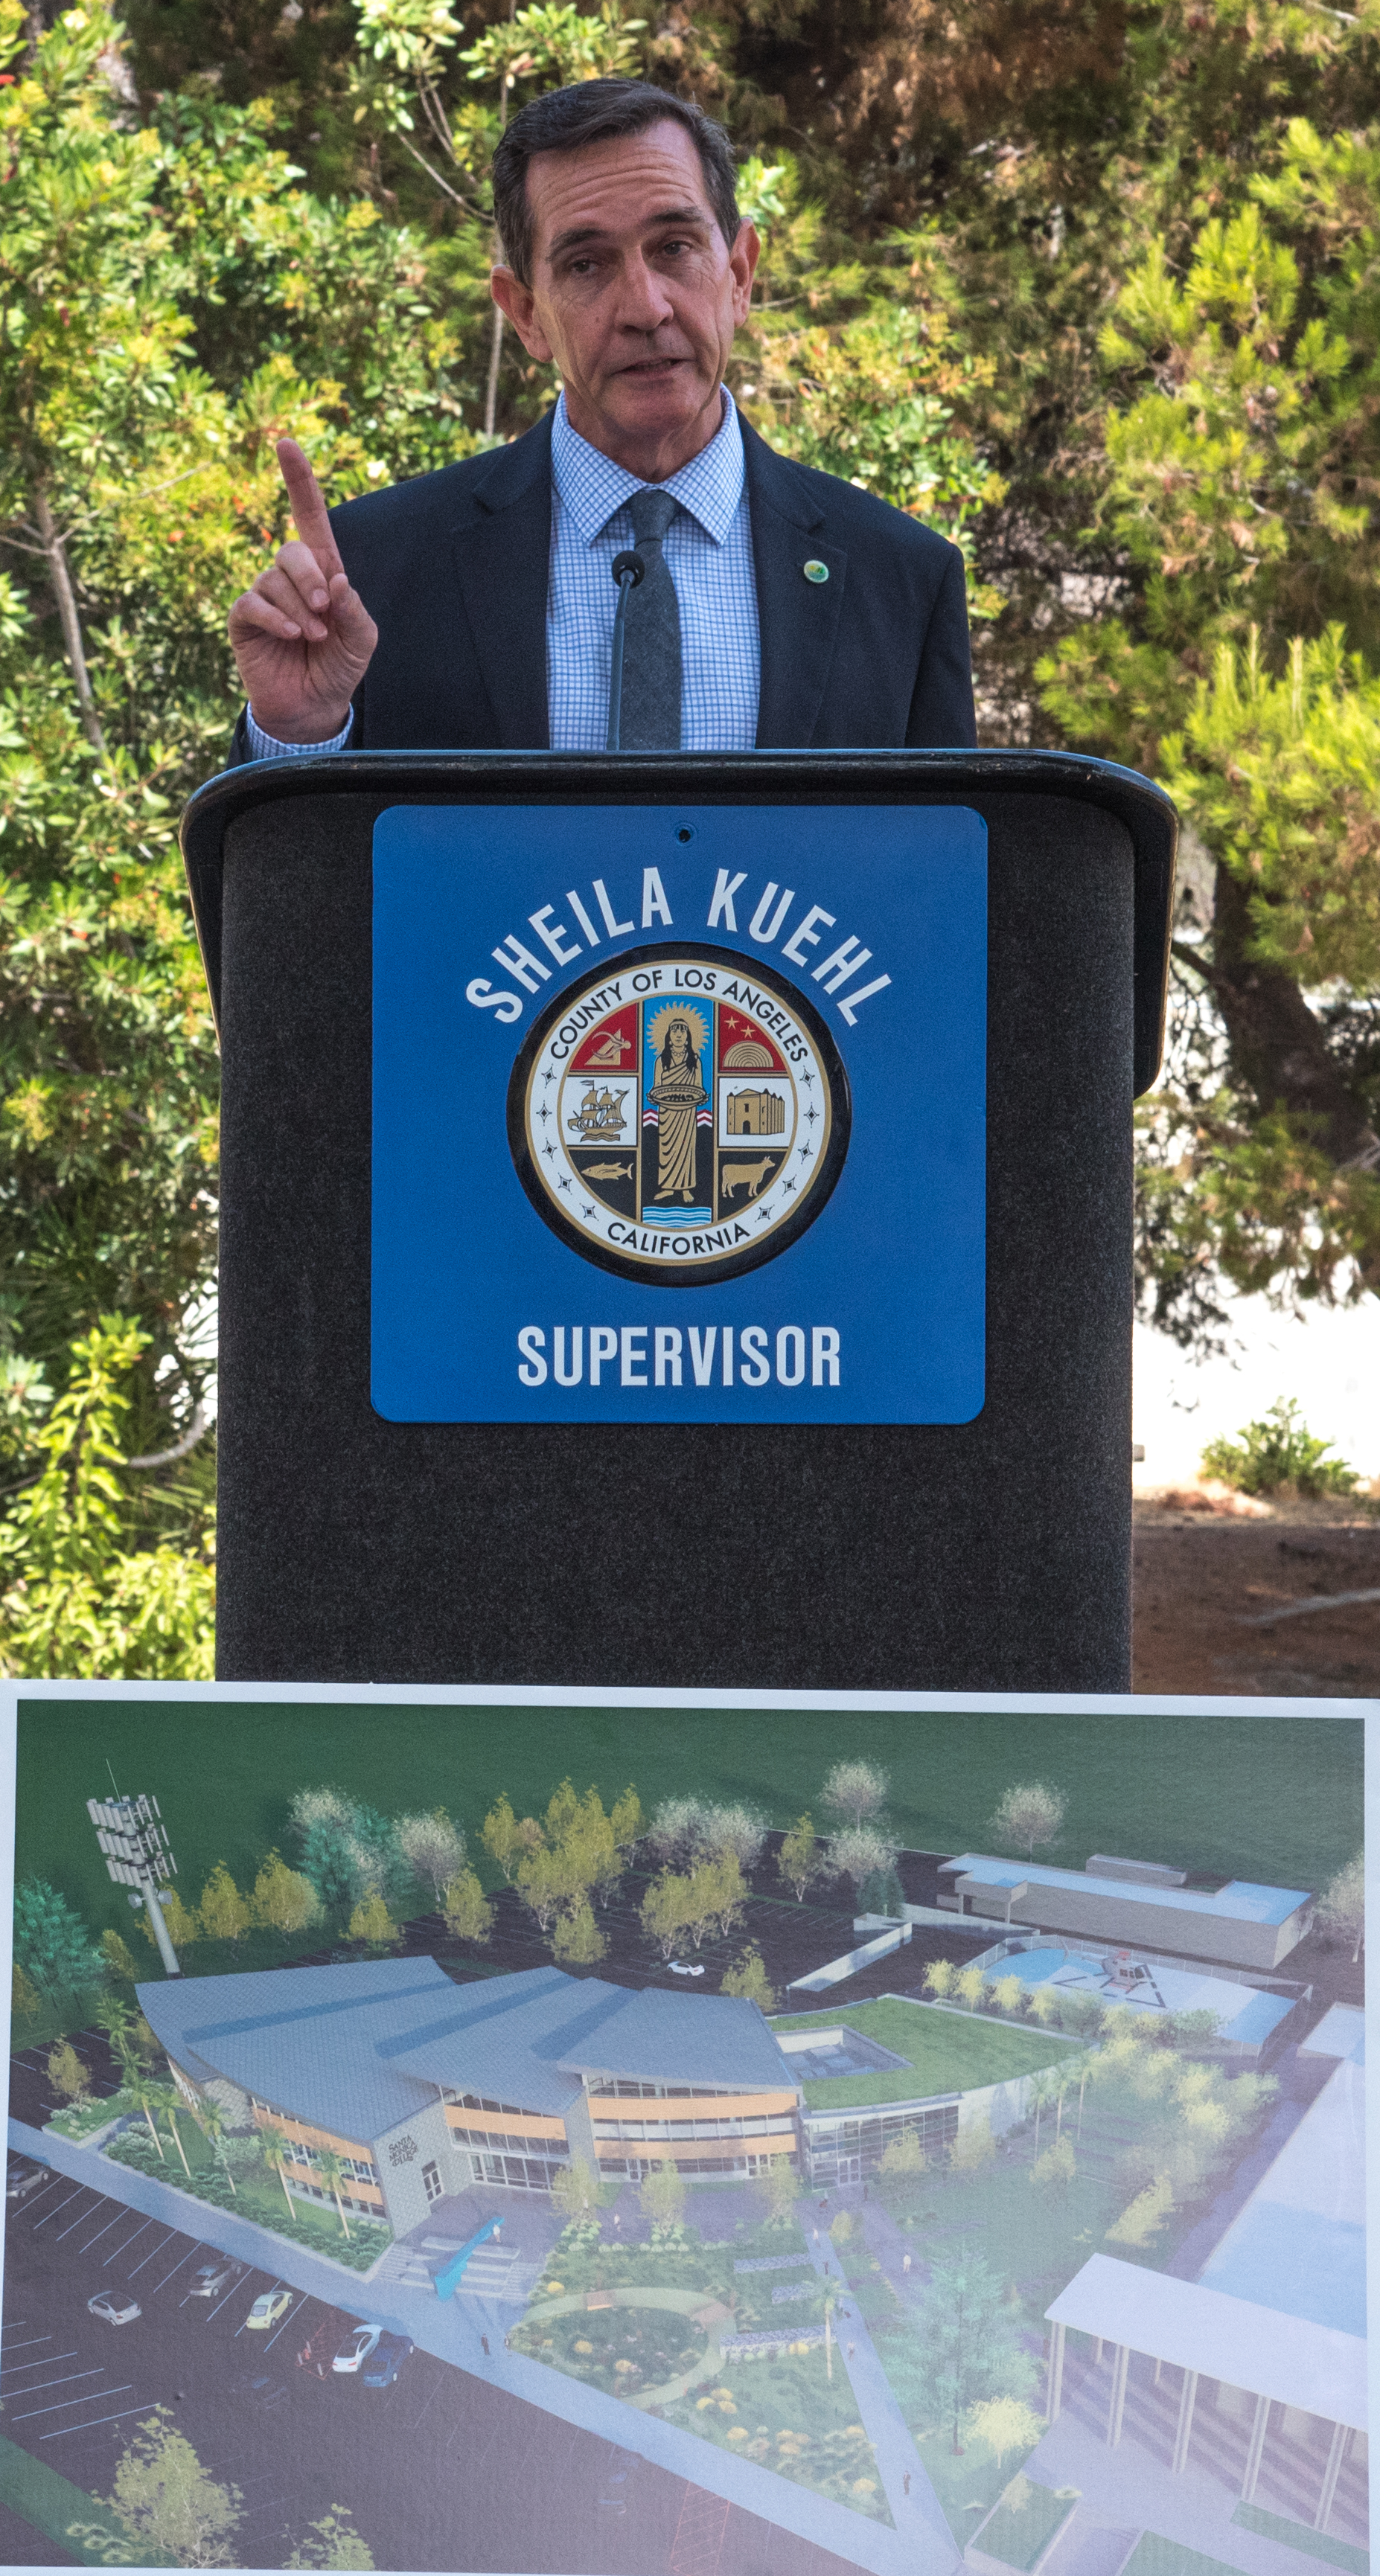 Mayor Rick Mullen, of the City of Malibu, addresses investors, Los Angeles County sheriff's deputies, City of Malibu officials, and Santa Monica College Board of Trustees members gathered at the official ground breaking ceremony of the Santa Monica College Malibu Campus & Los Angeles County Sheriff's Substation on September 21, 2018 in Malibu, California.